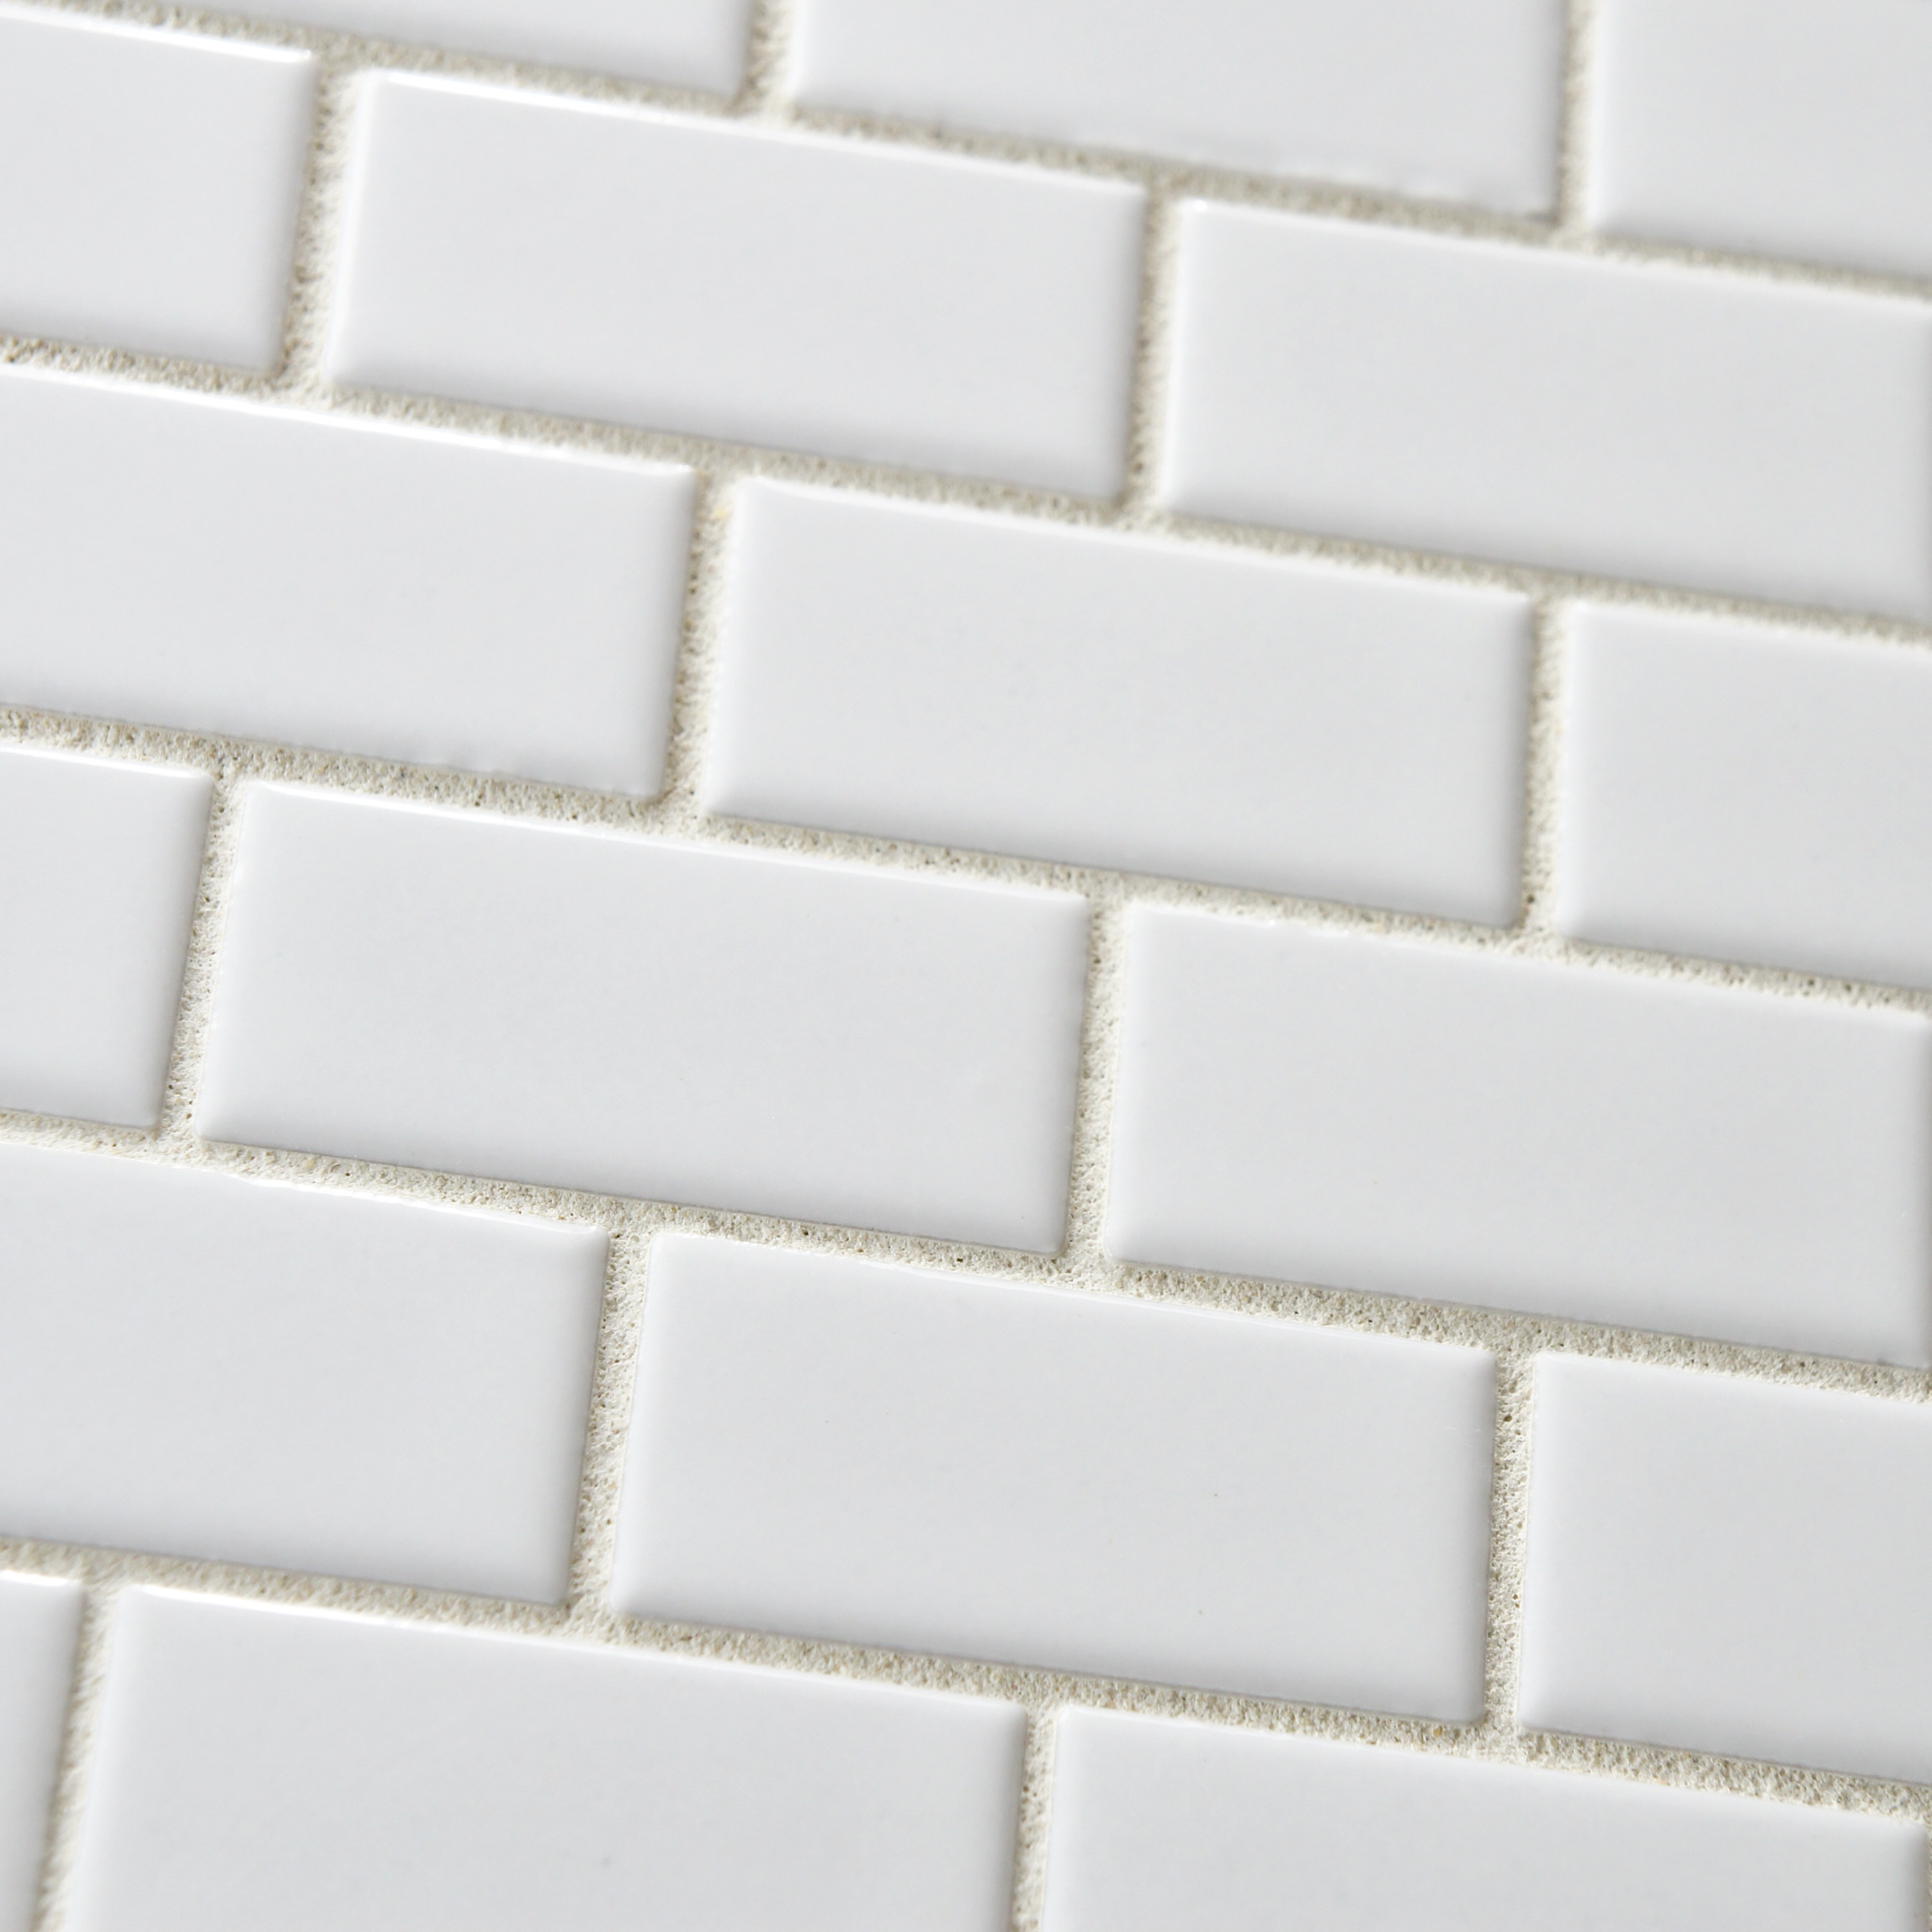 Somertile 1175x1175 in victorian subway 1x2 in white porcelain somertile 1175x1175 in victorian subway 1x2 in white porcelain mosaic tile pack of 10 free shipping today overstock 12185960 dailygadgetfo Choice Image